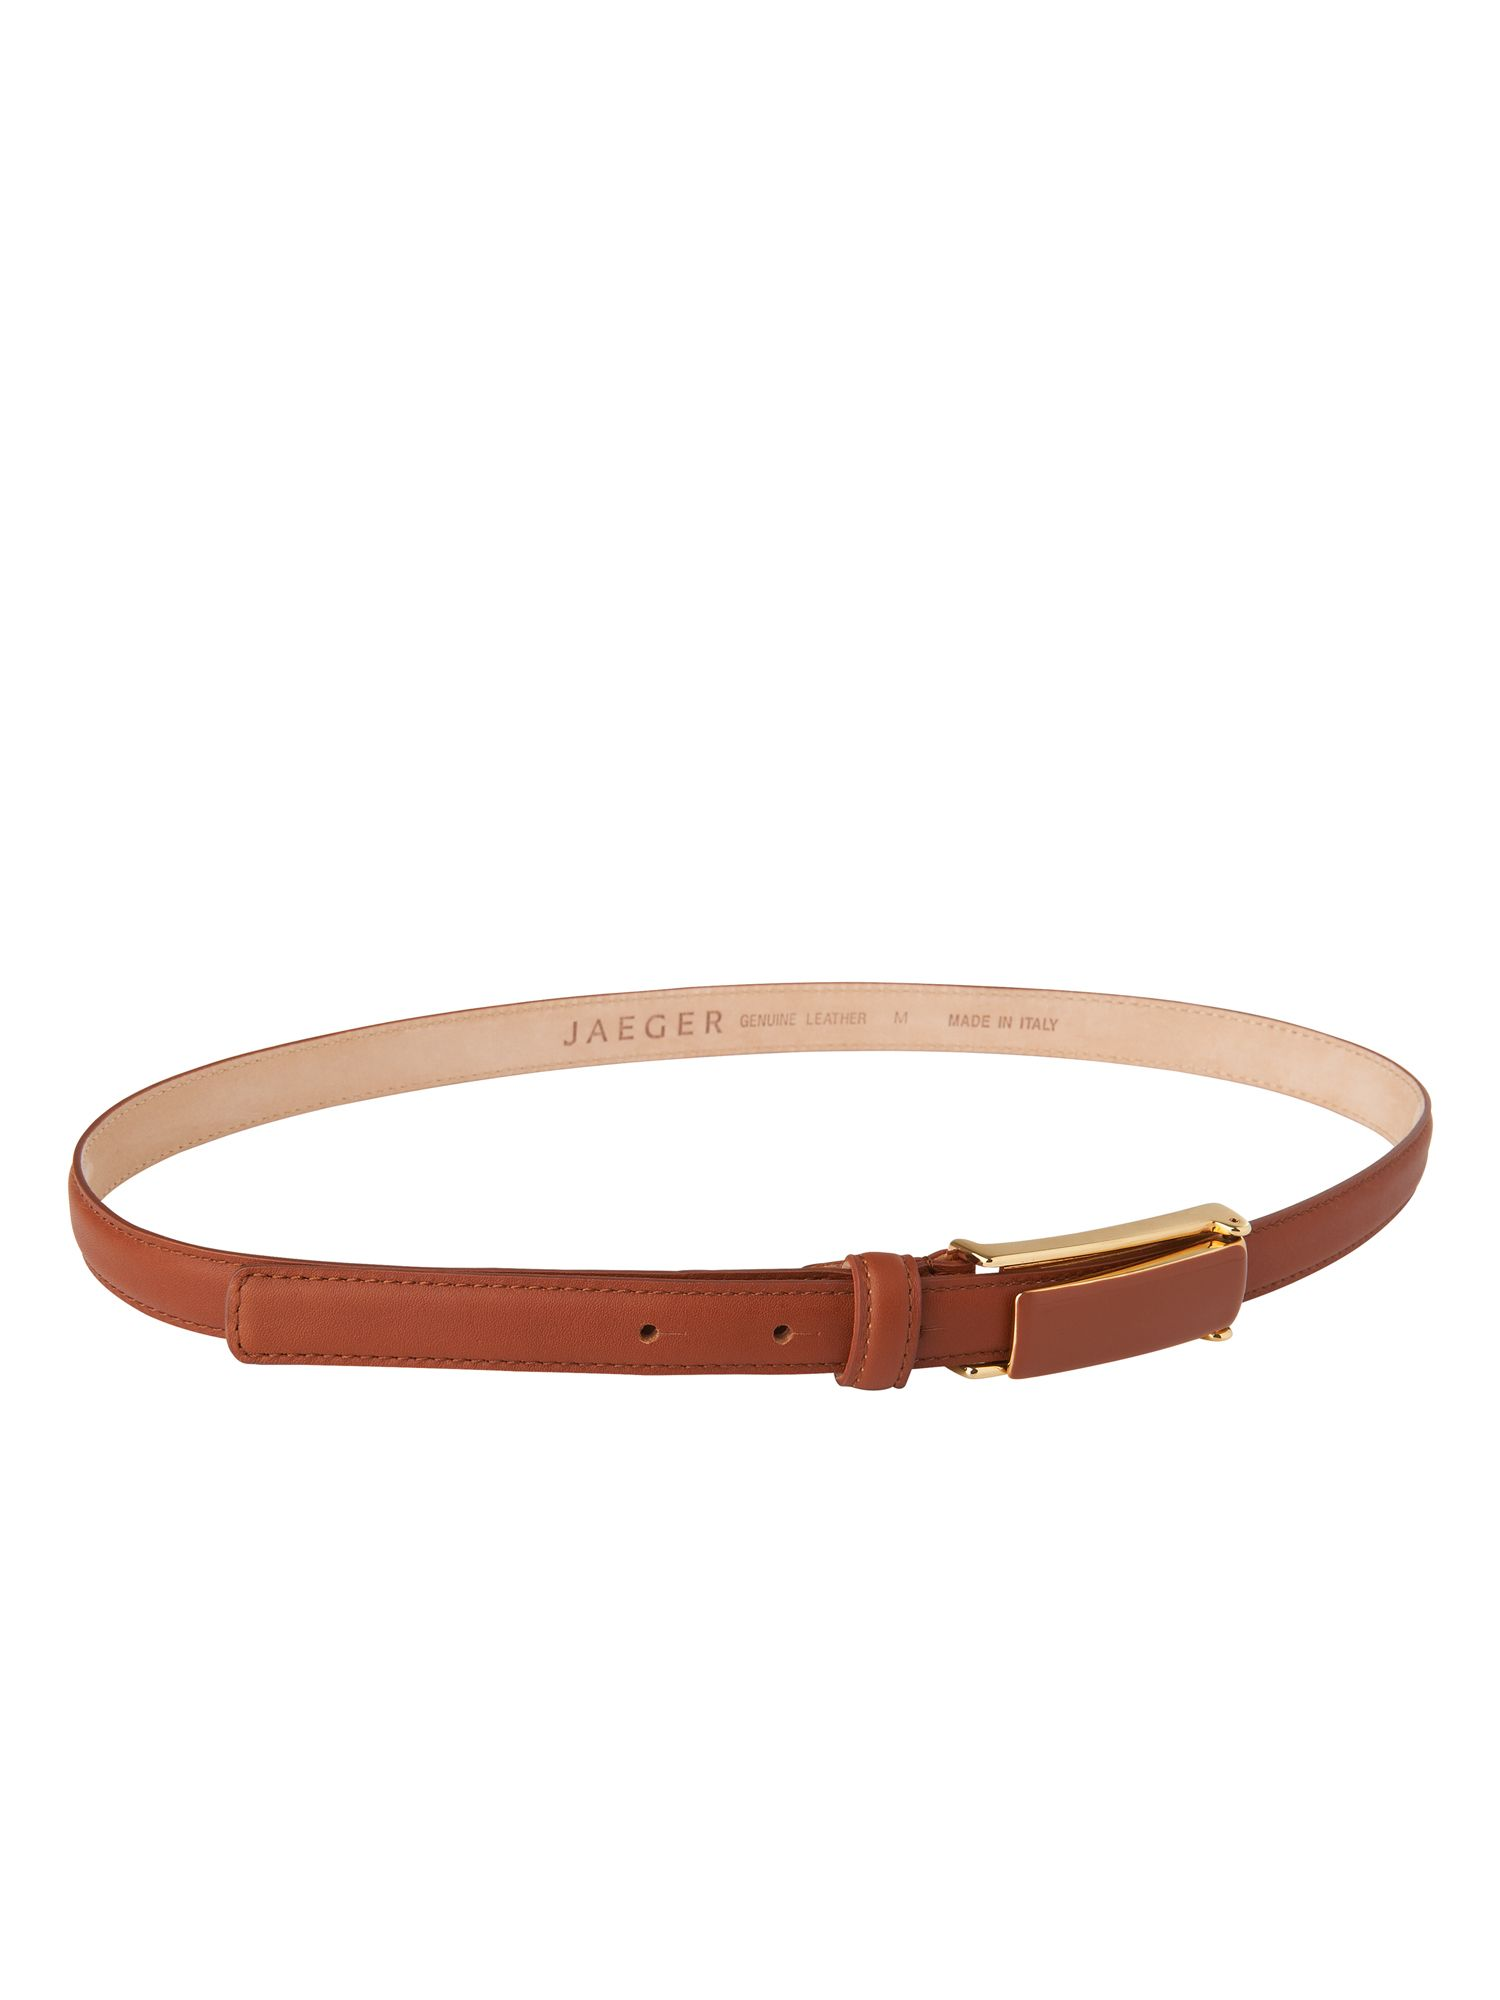 Trouser belt - long rectangle buckle